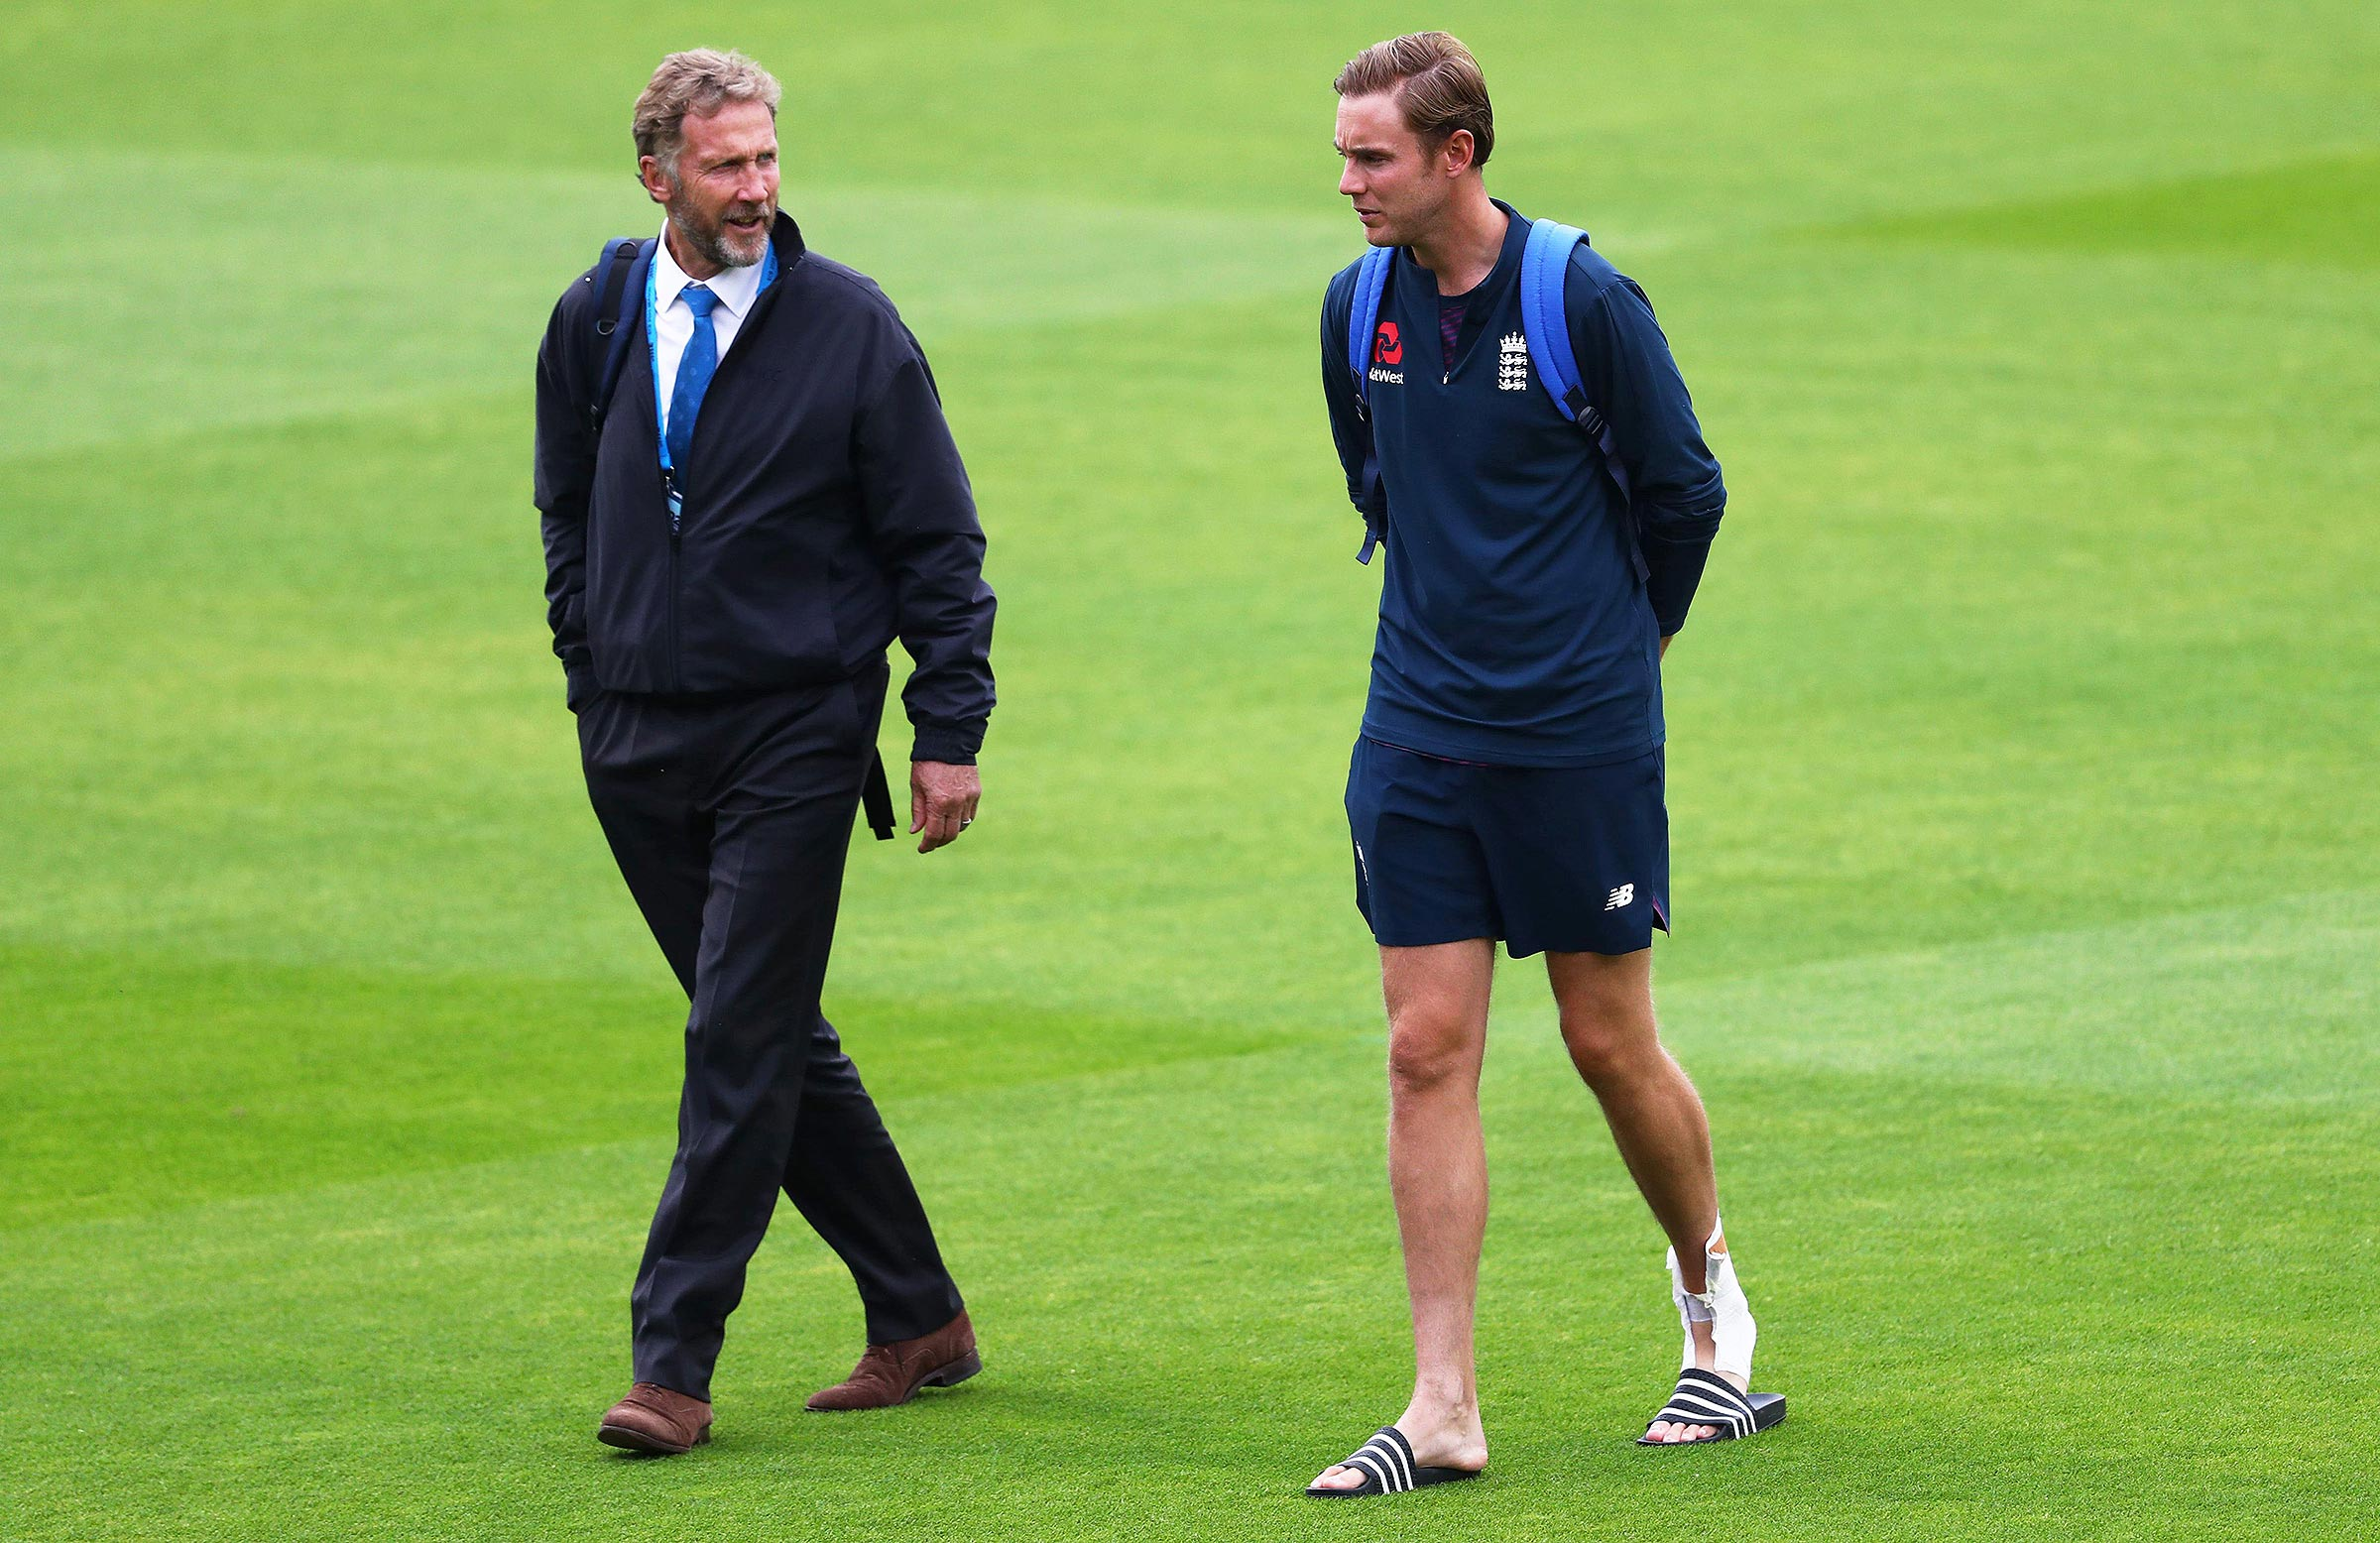 Chris Broad (left) and son Stuart // Getty